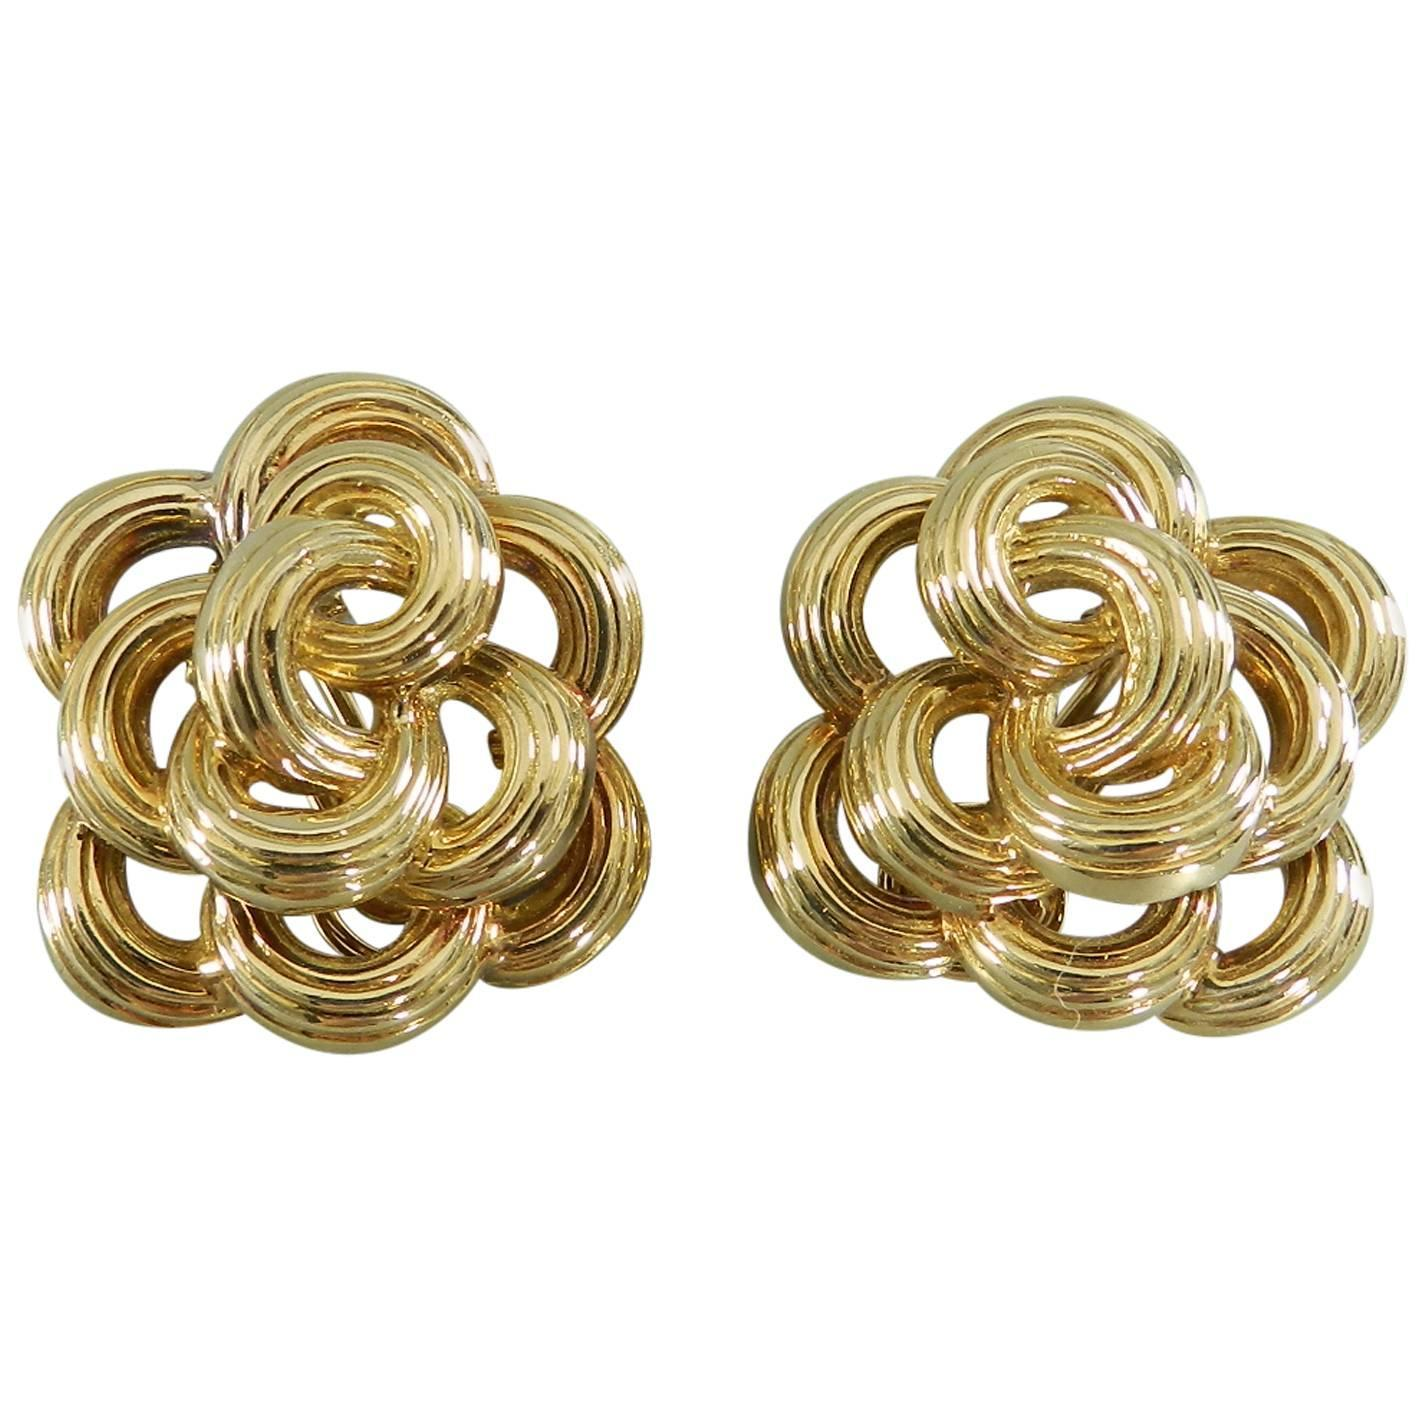 gold italiangoldjewelry htm earrings jewelry italiangoldringside specialcollections italian